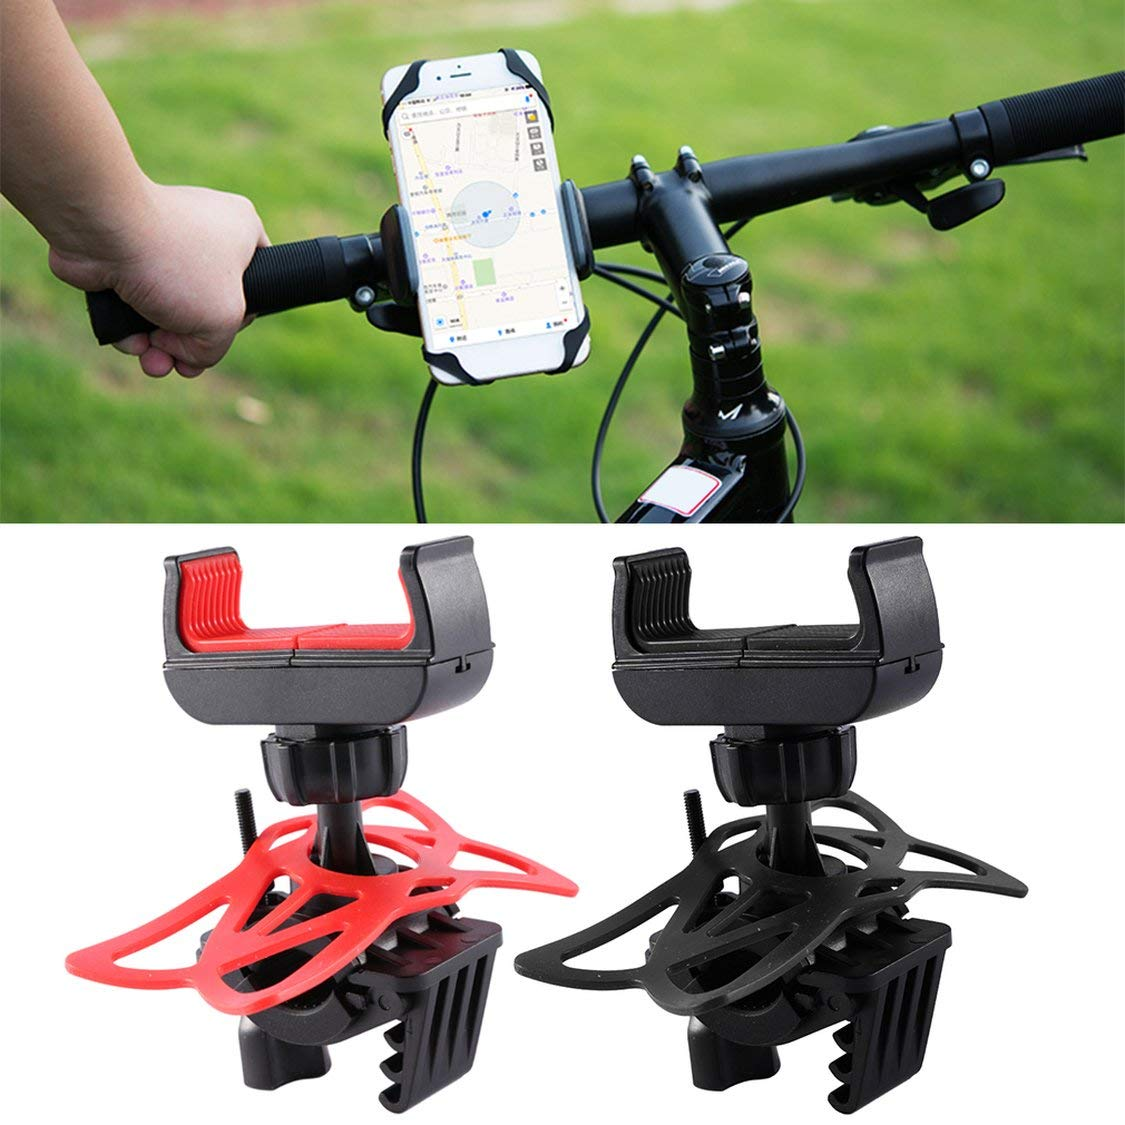 Multifuncional Bike Mount Universal Cellular Bicycle Rack Handlebar Titular de la Motocicleta Cradle Bicycle Riding Equipment vige